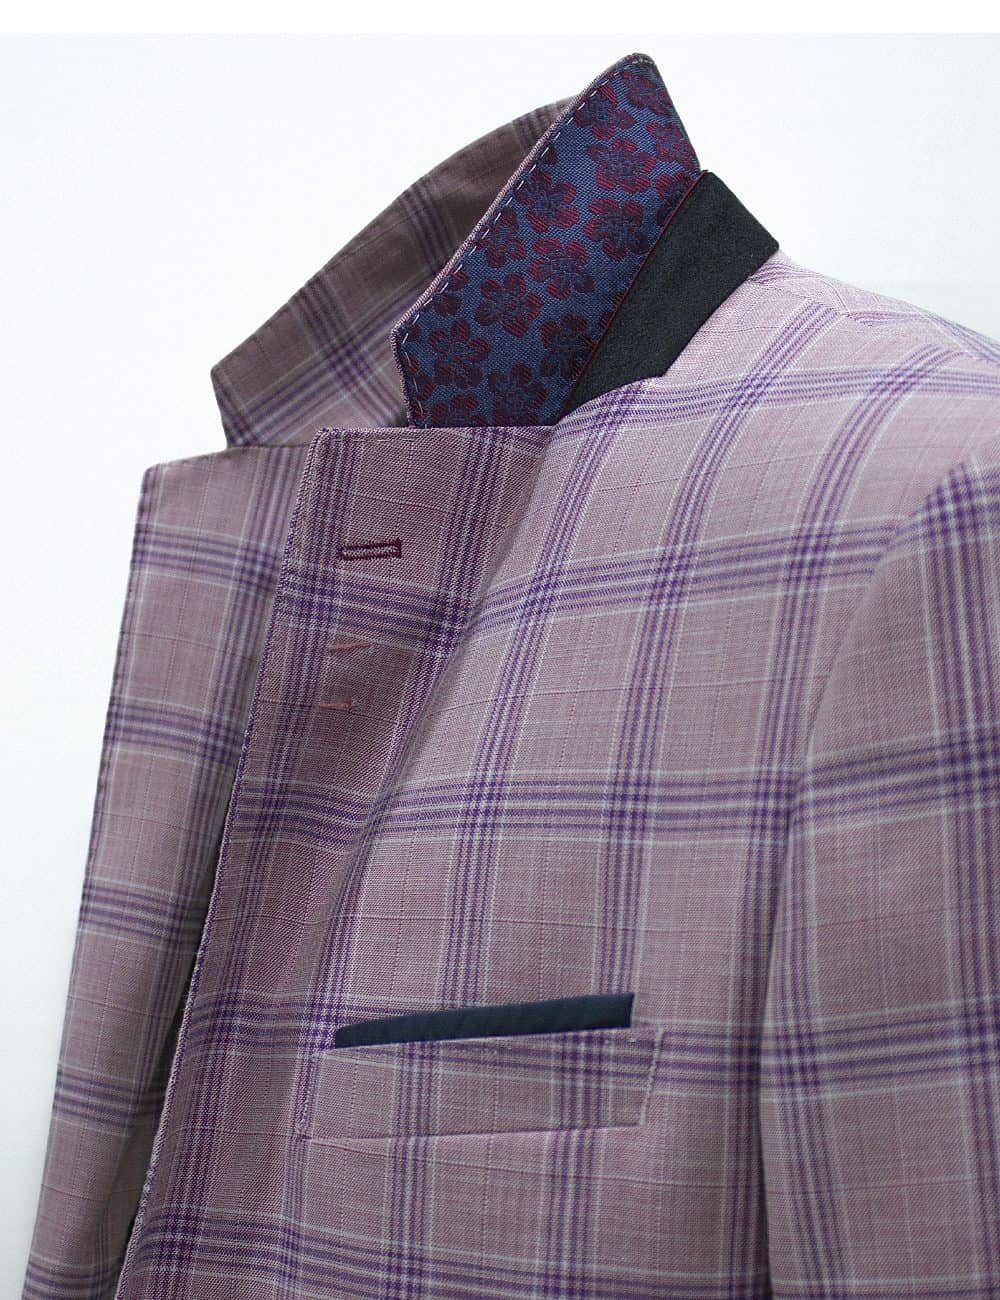 Slim Fit Pink with Blue Checks Single Breasted Blazer - S2B1.4